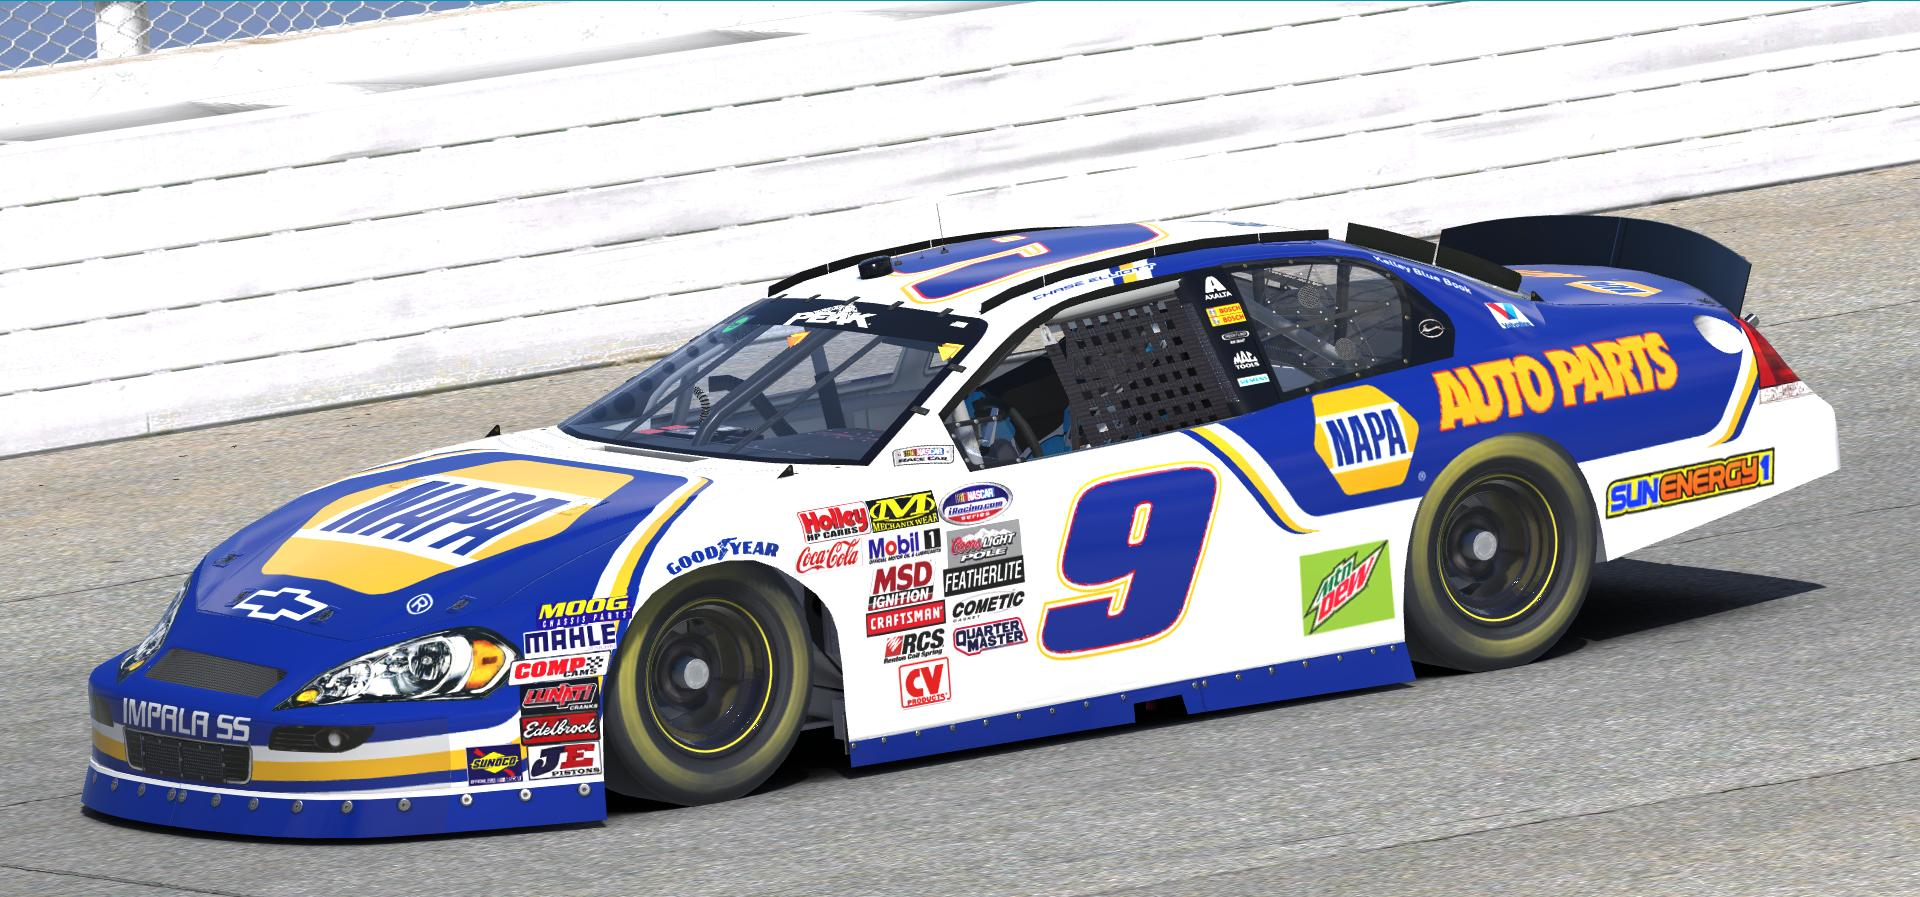 Preview of 2018 Chase Elliott Napa Auto Parts Impala by Doug DeNise